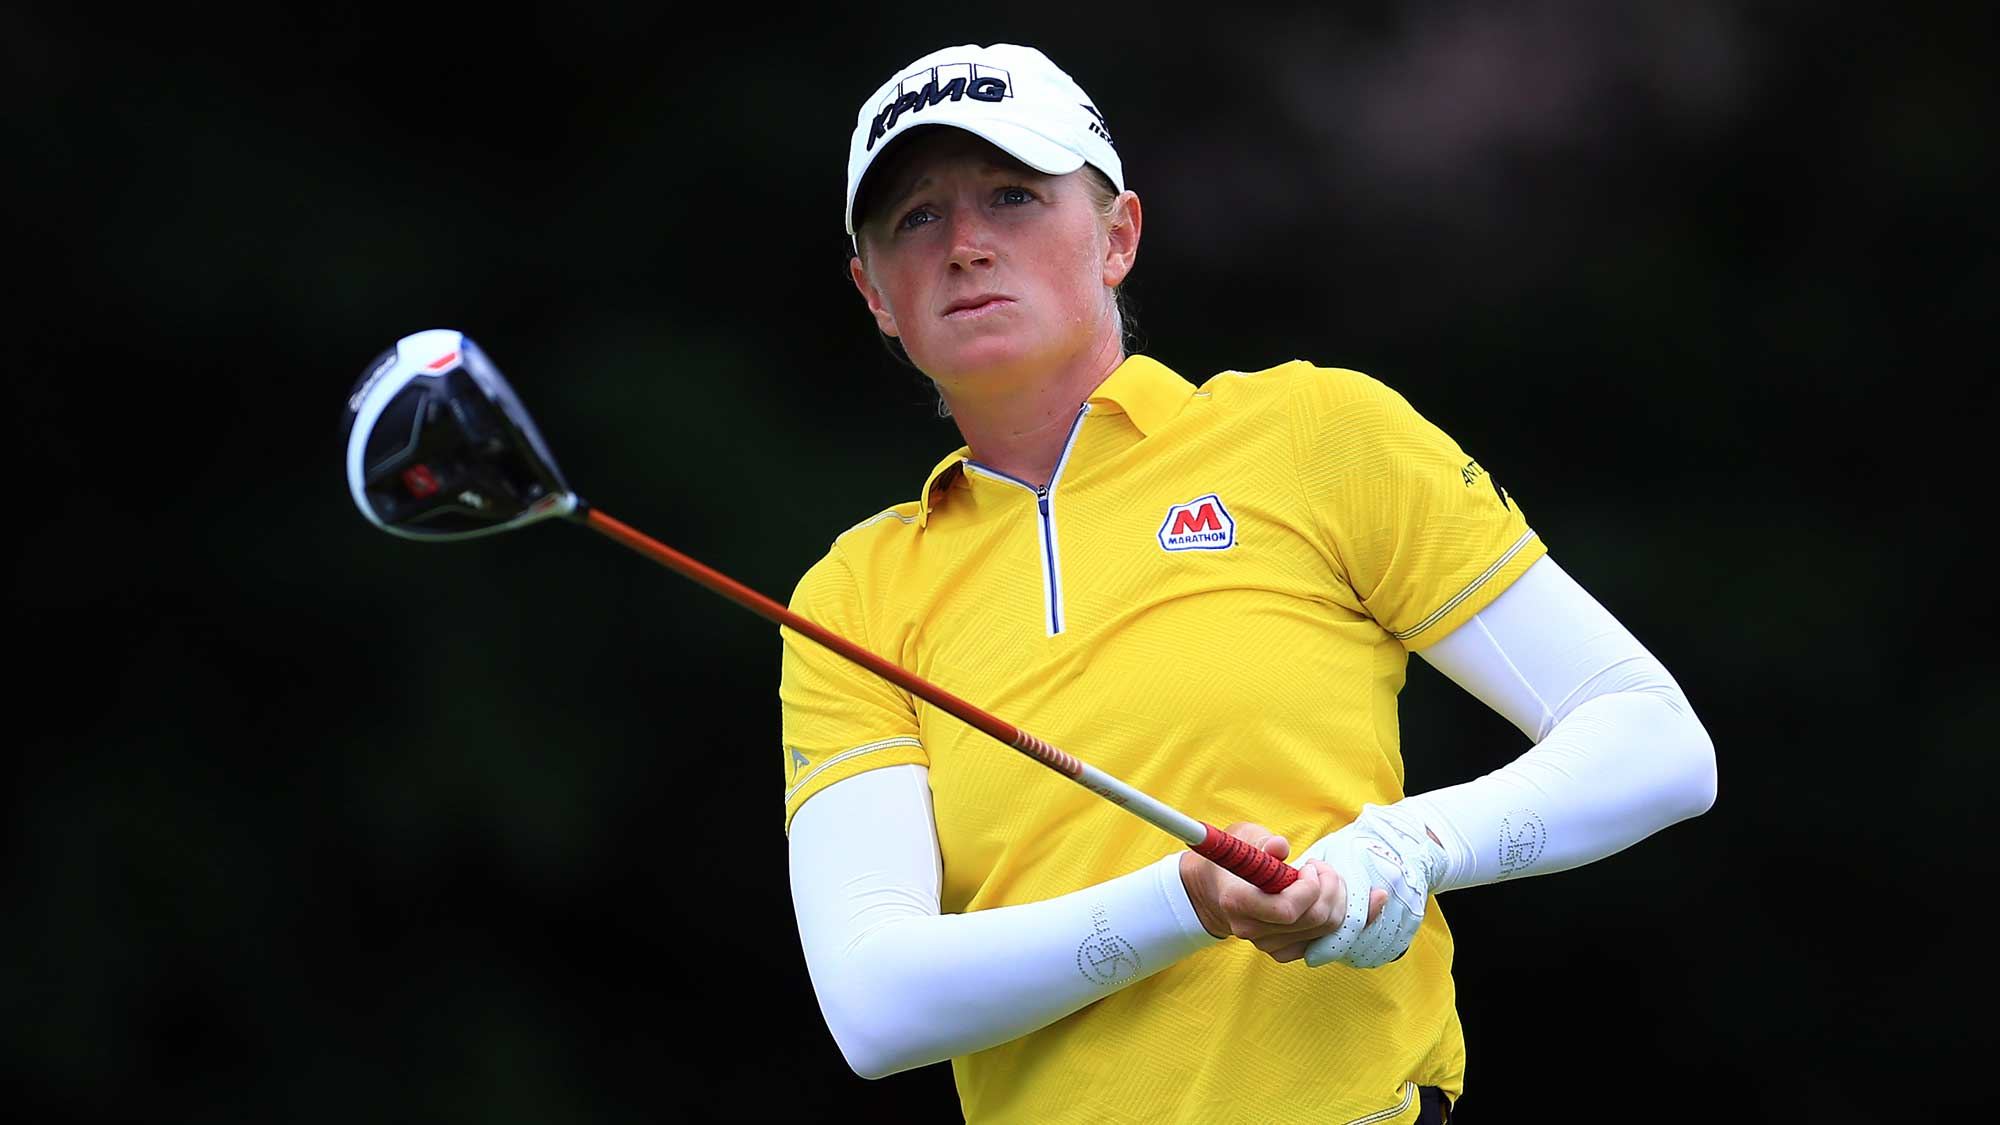 Stacy Lewis of the United States hits her tee shot on the 4th hole during the final round of the Canadian Pacific Women's Open